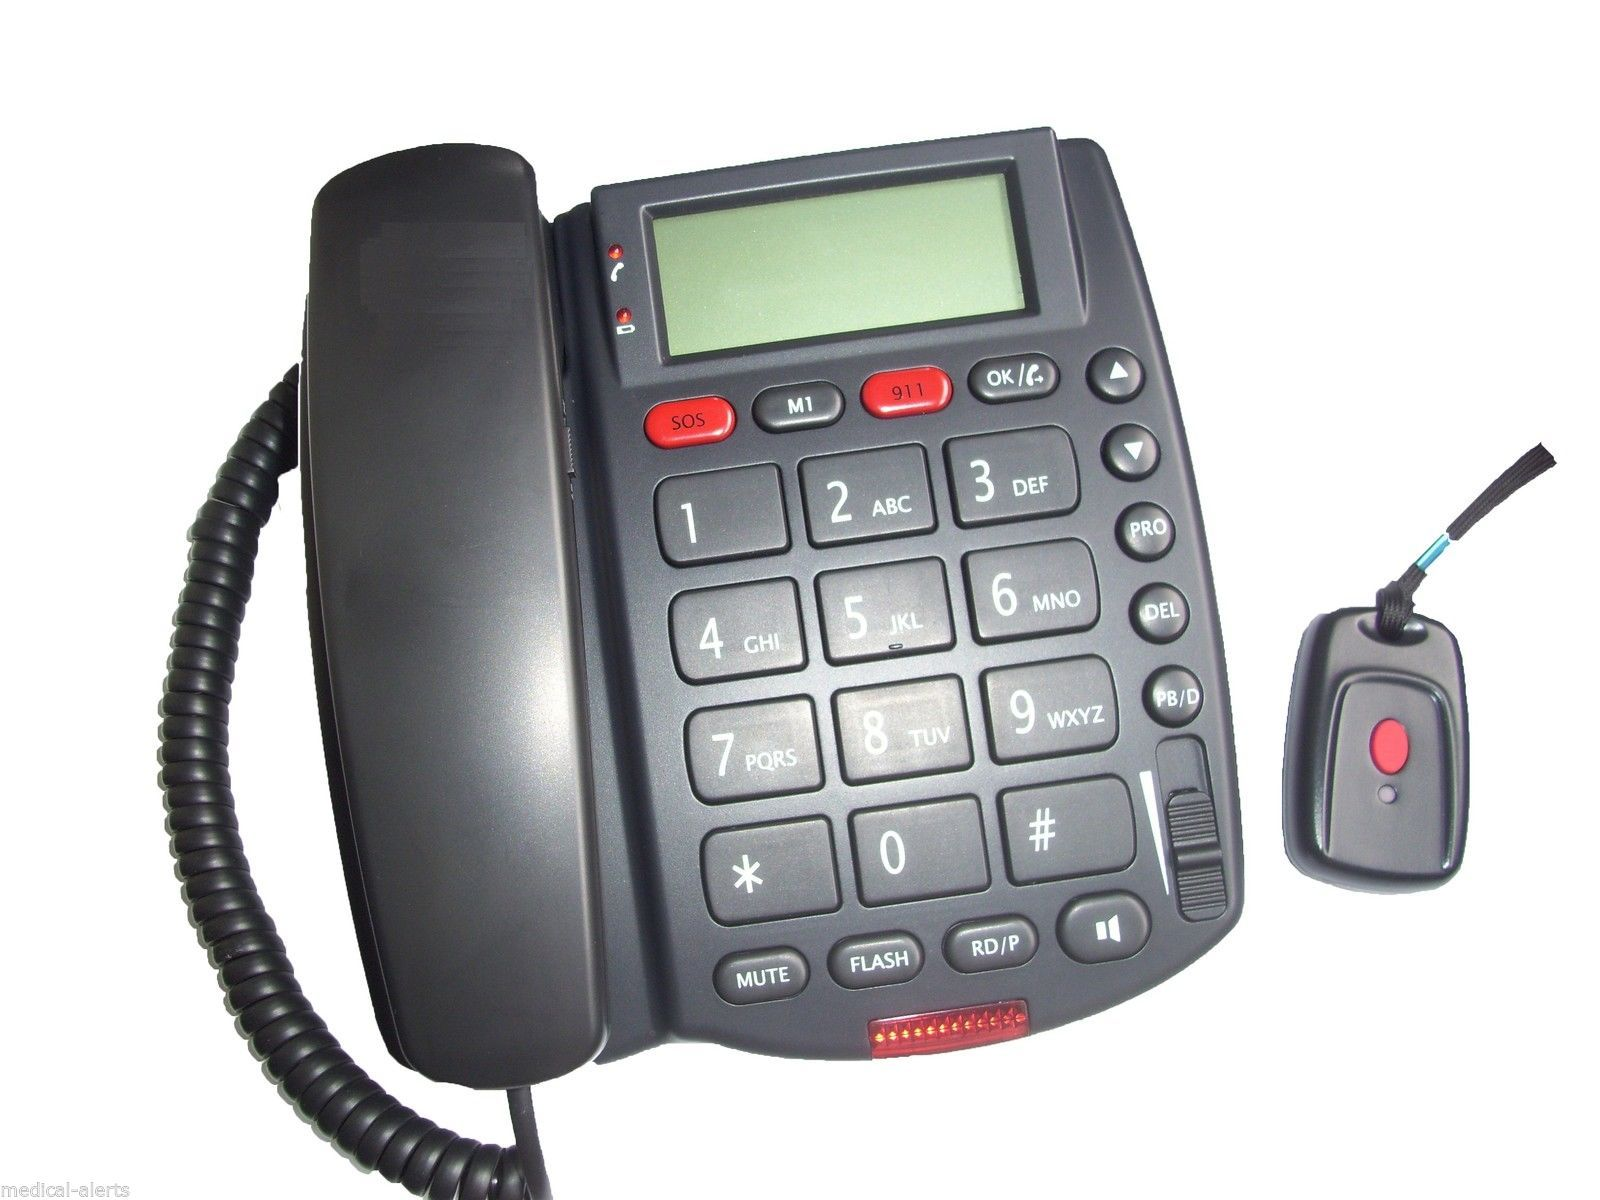 Emergency Phone Dialer With No Monthly Fees 911 Life Line Alert